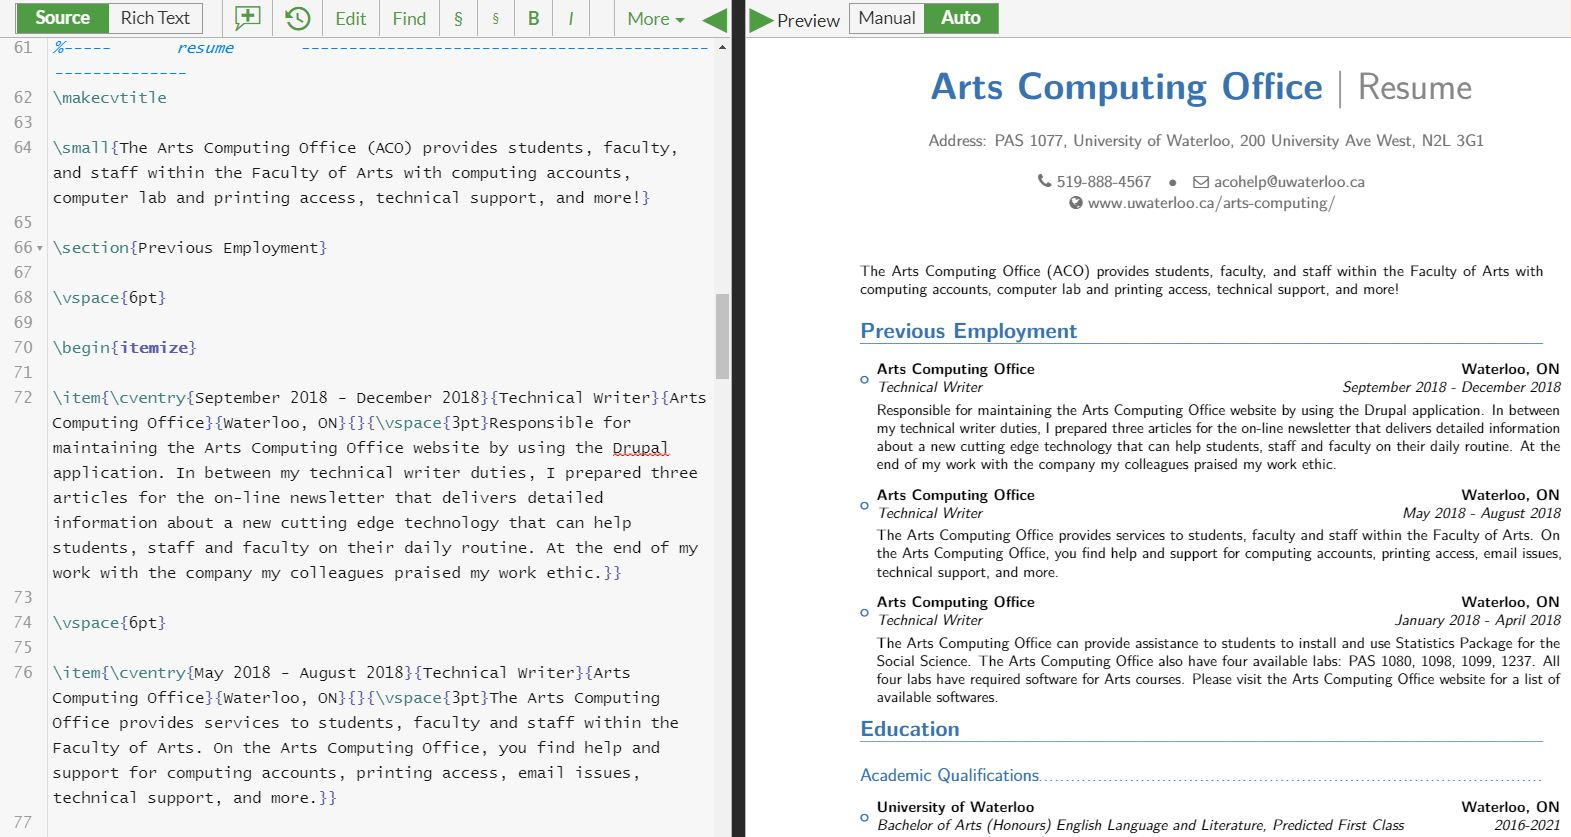 Overleaf | Arts Computing Office Newsletter | University of